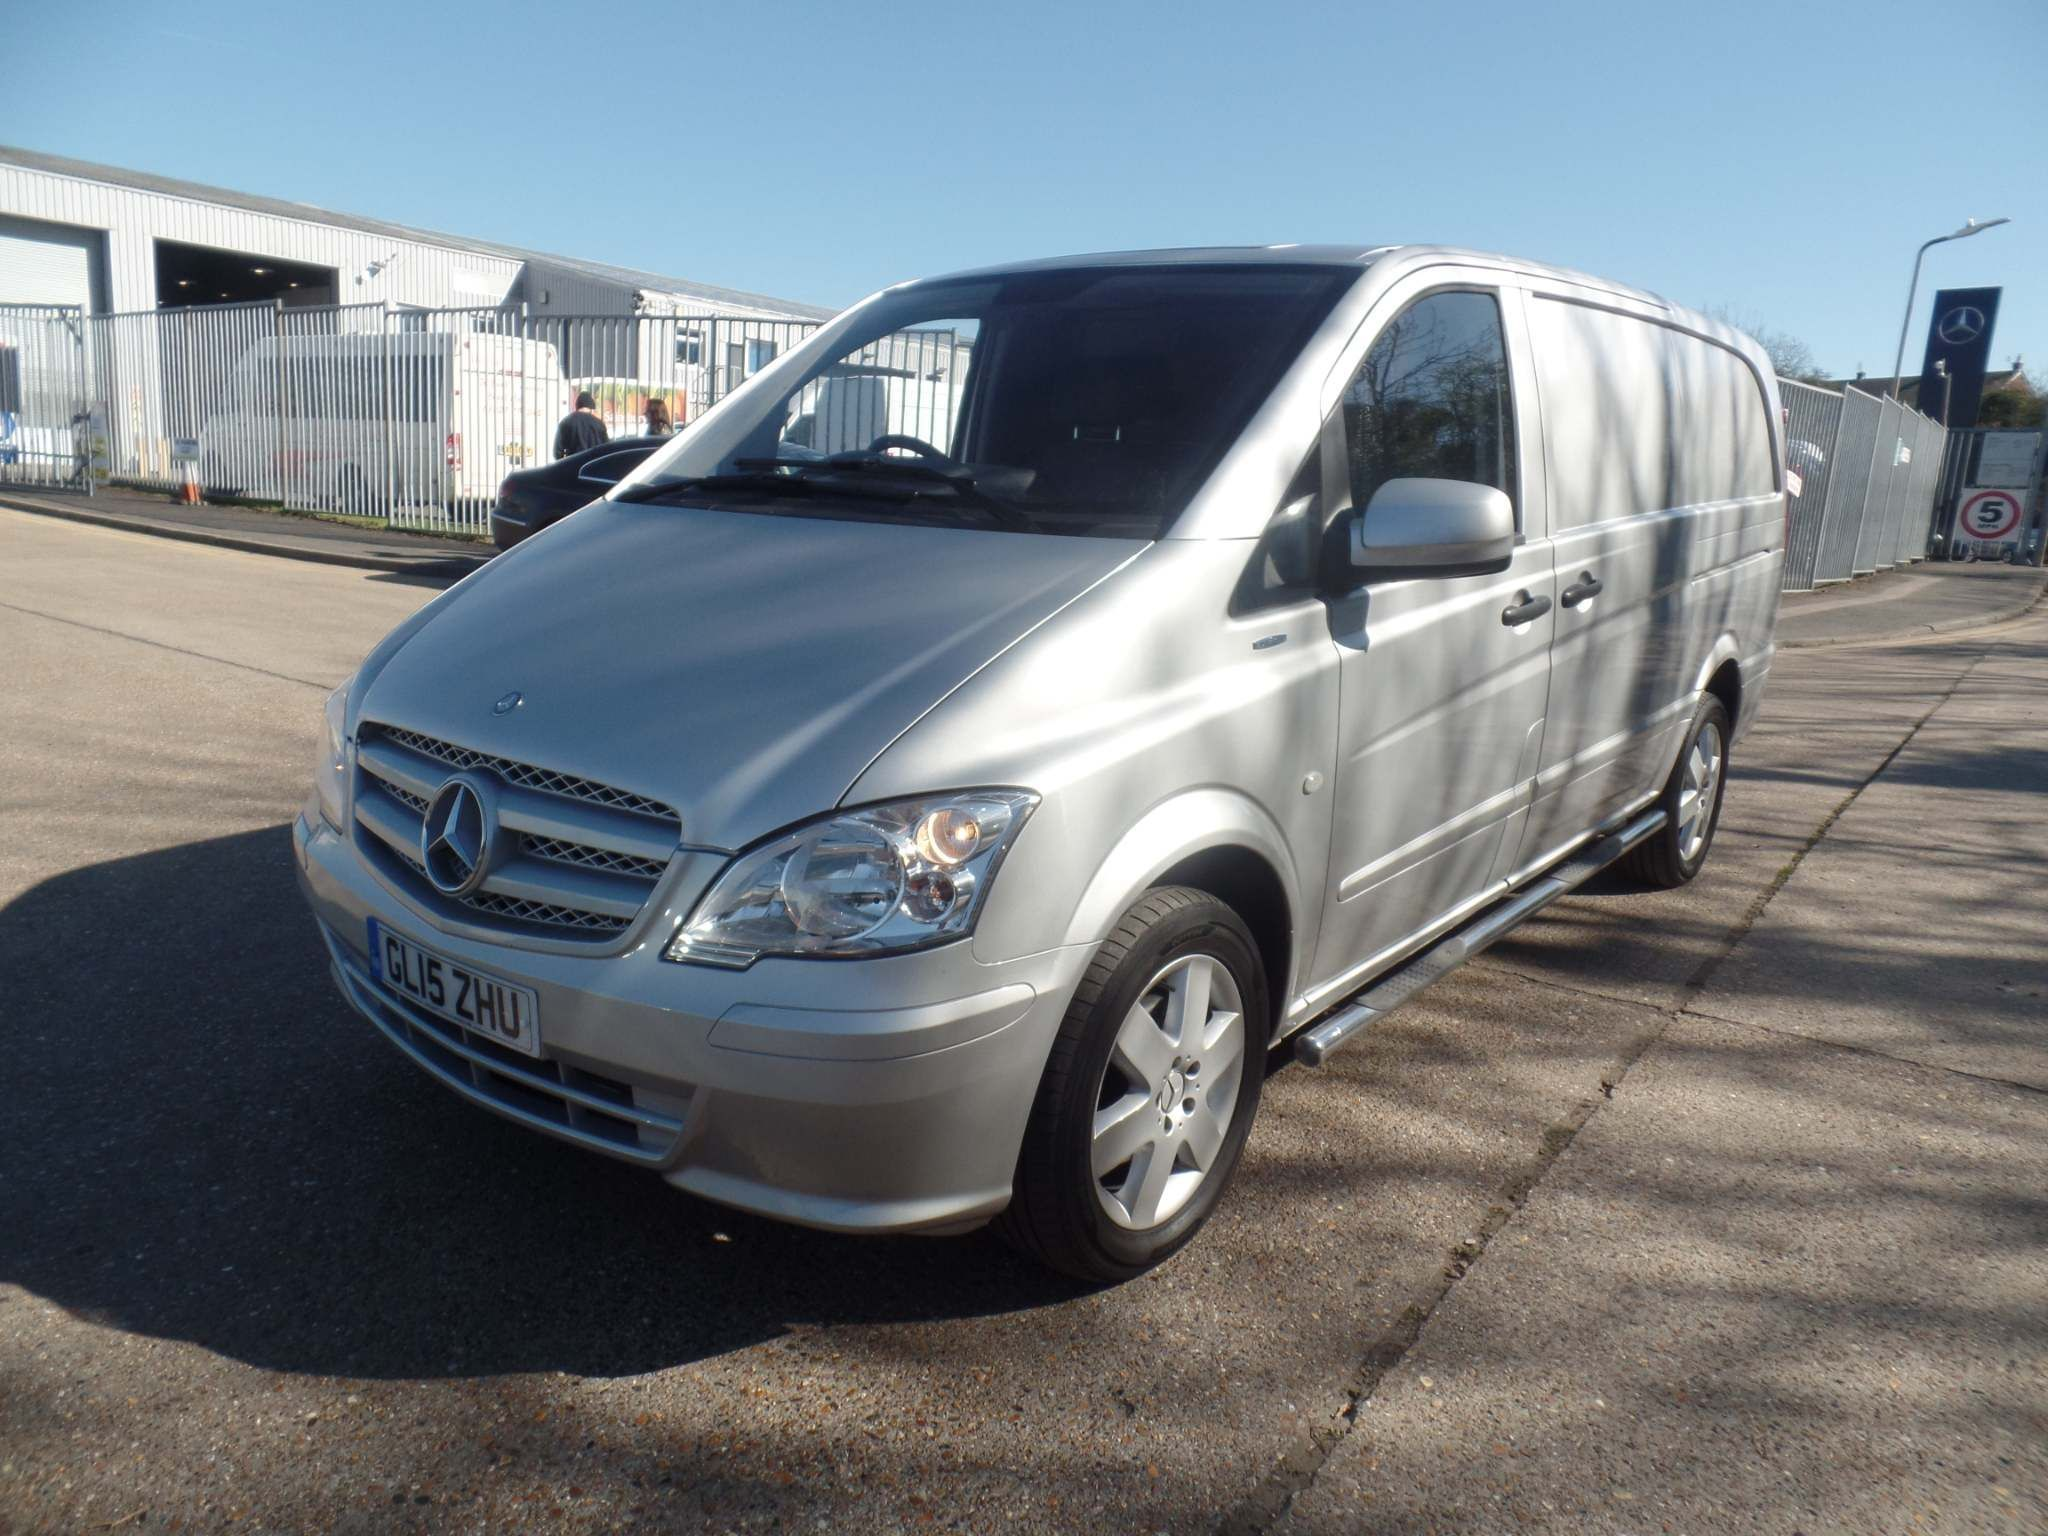 Mercedes-Benz Vito 2.1 116CDI BlueEFFICIENCY Long Panel Van 5dr (EU5) - image 1